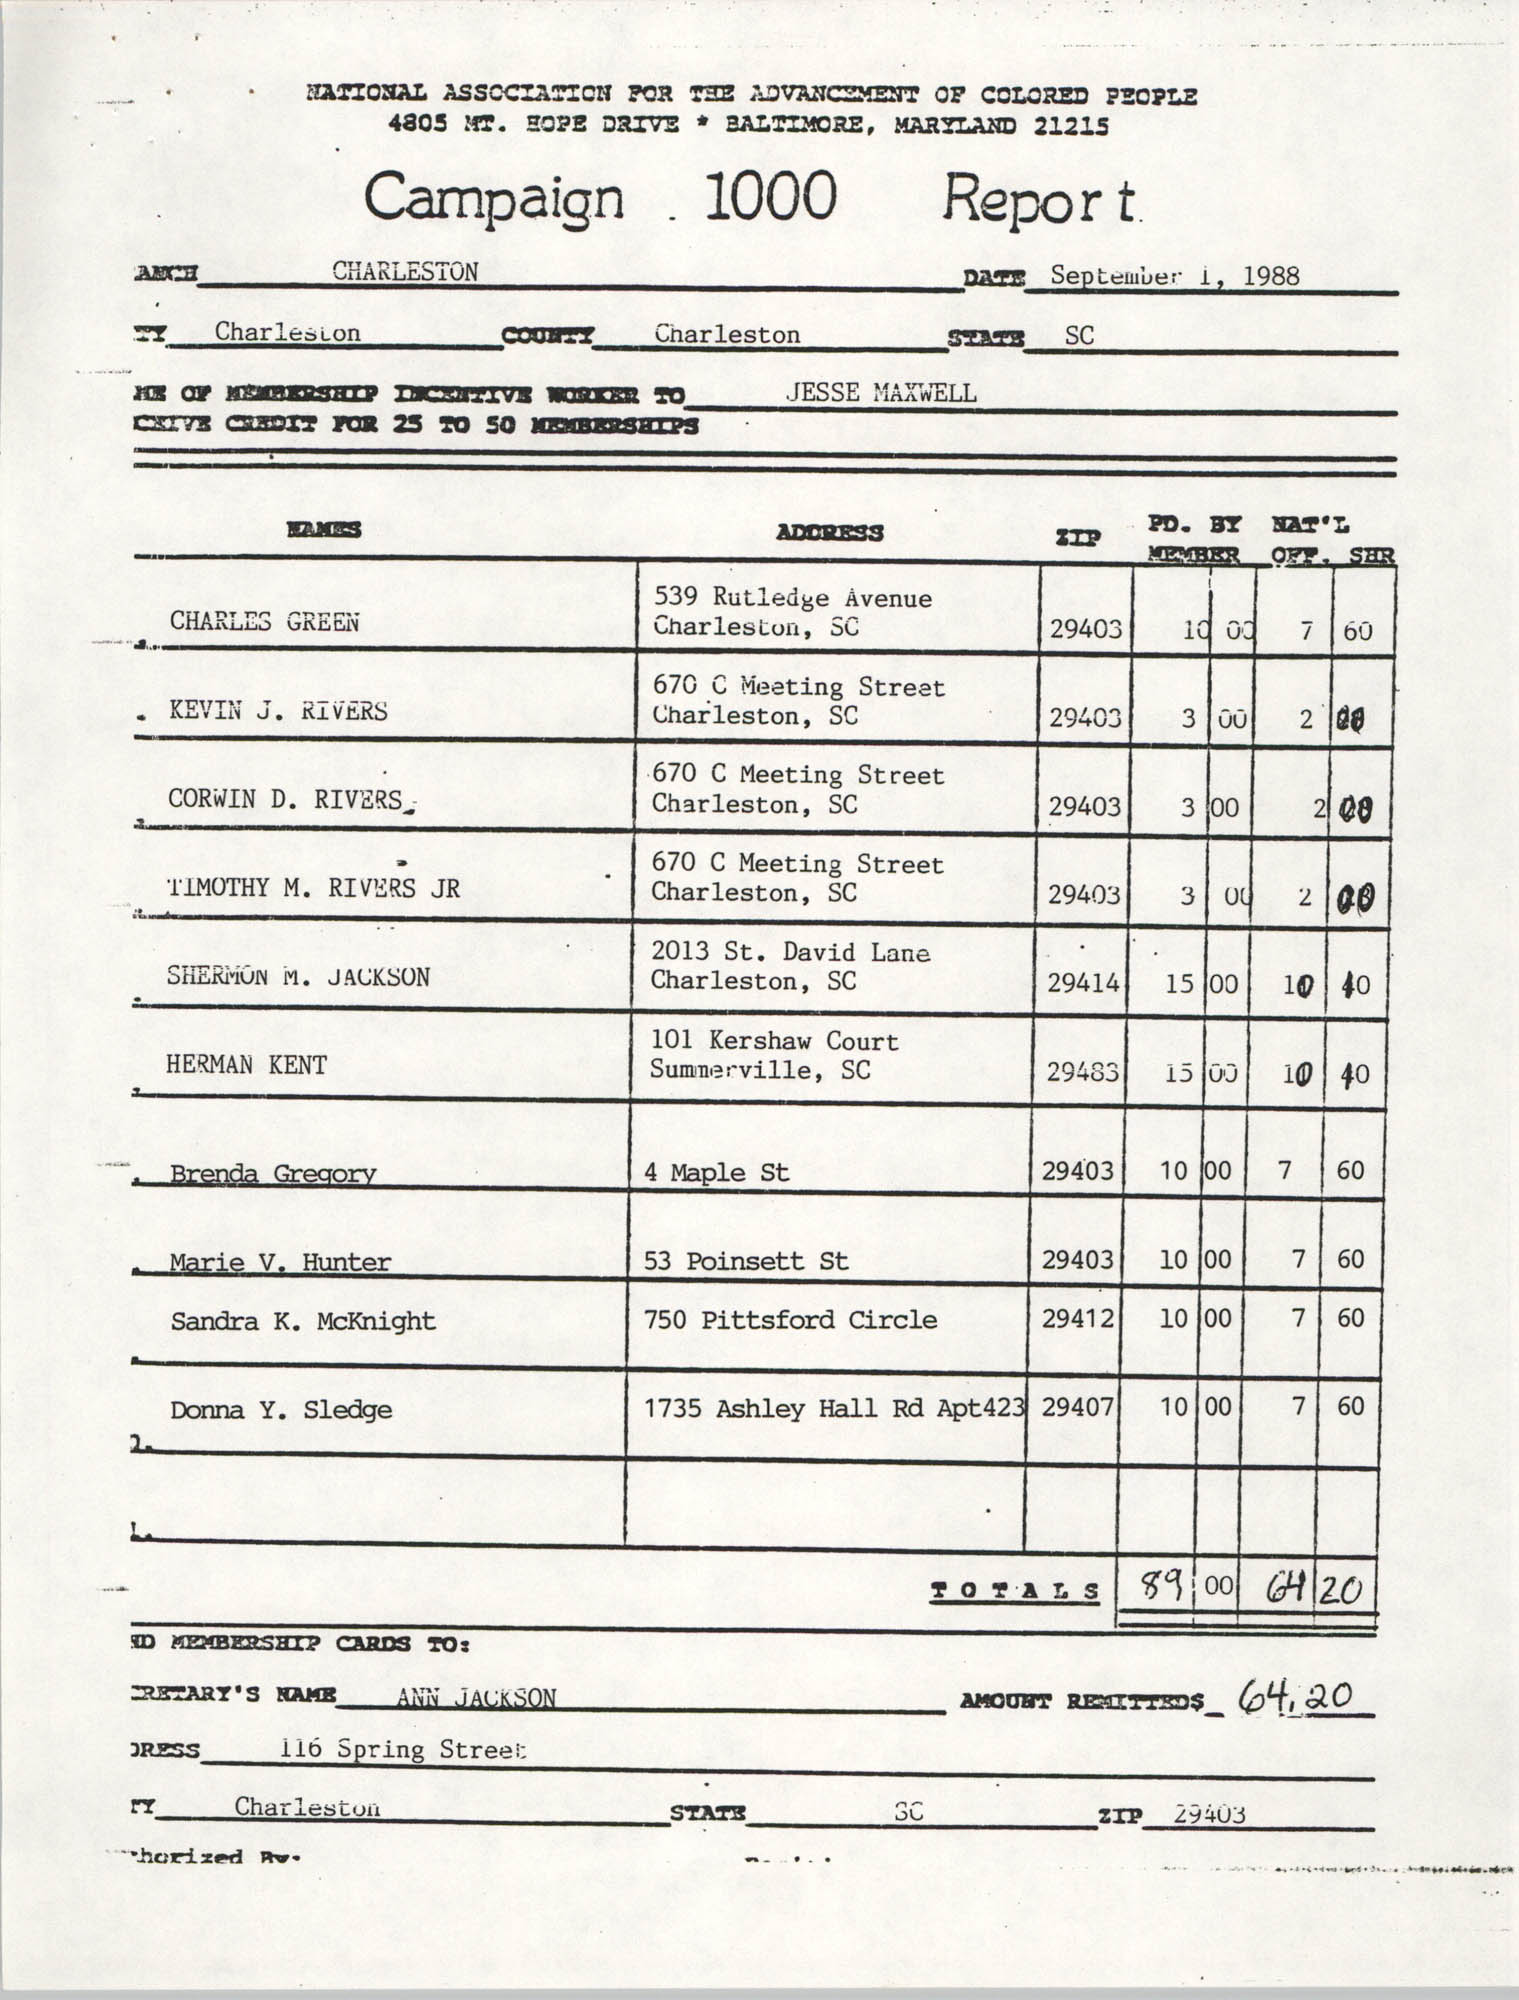 Campaign 1000 Report, Jesse Maxwell, Charleston Branch of the NAACP, September 1, 1988